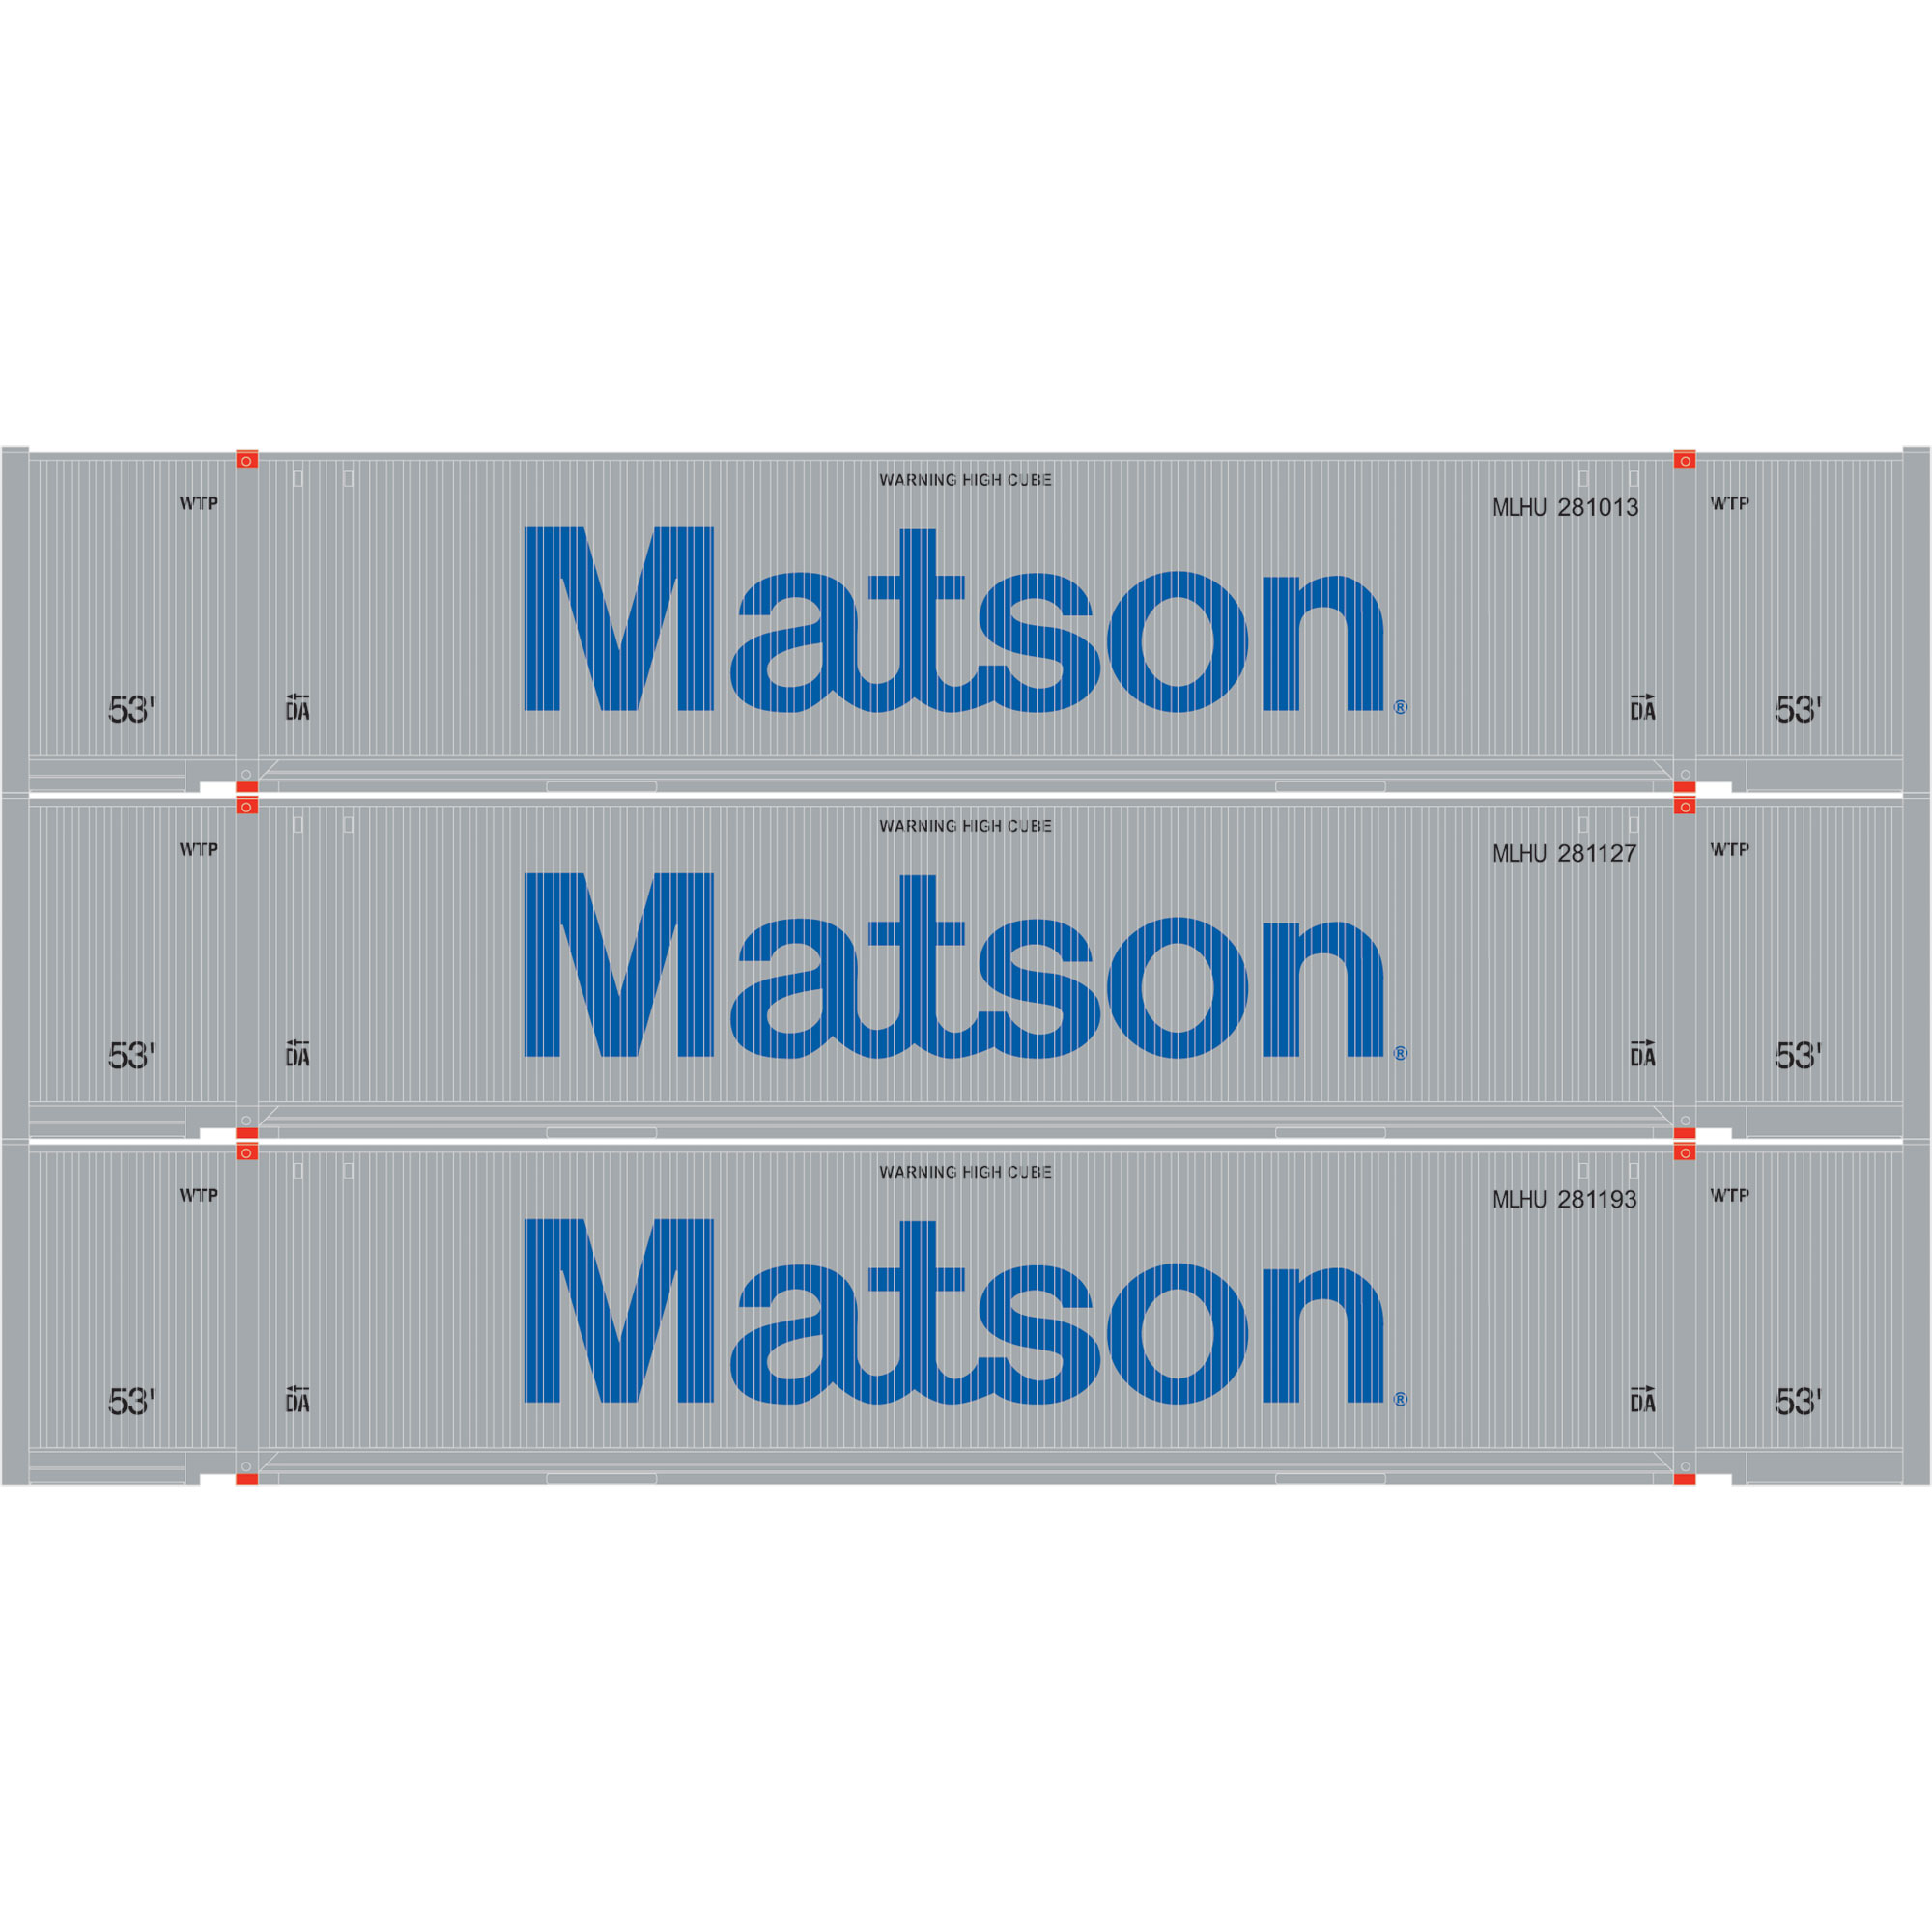 Ho rtr 53 39 jindo container matson 3 3 ath29361 athearn trains - Matson container homes ...